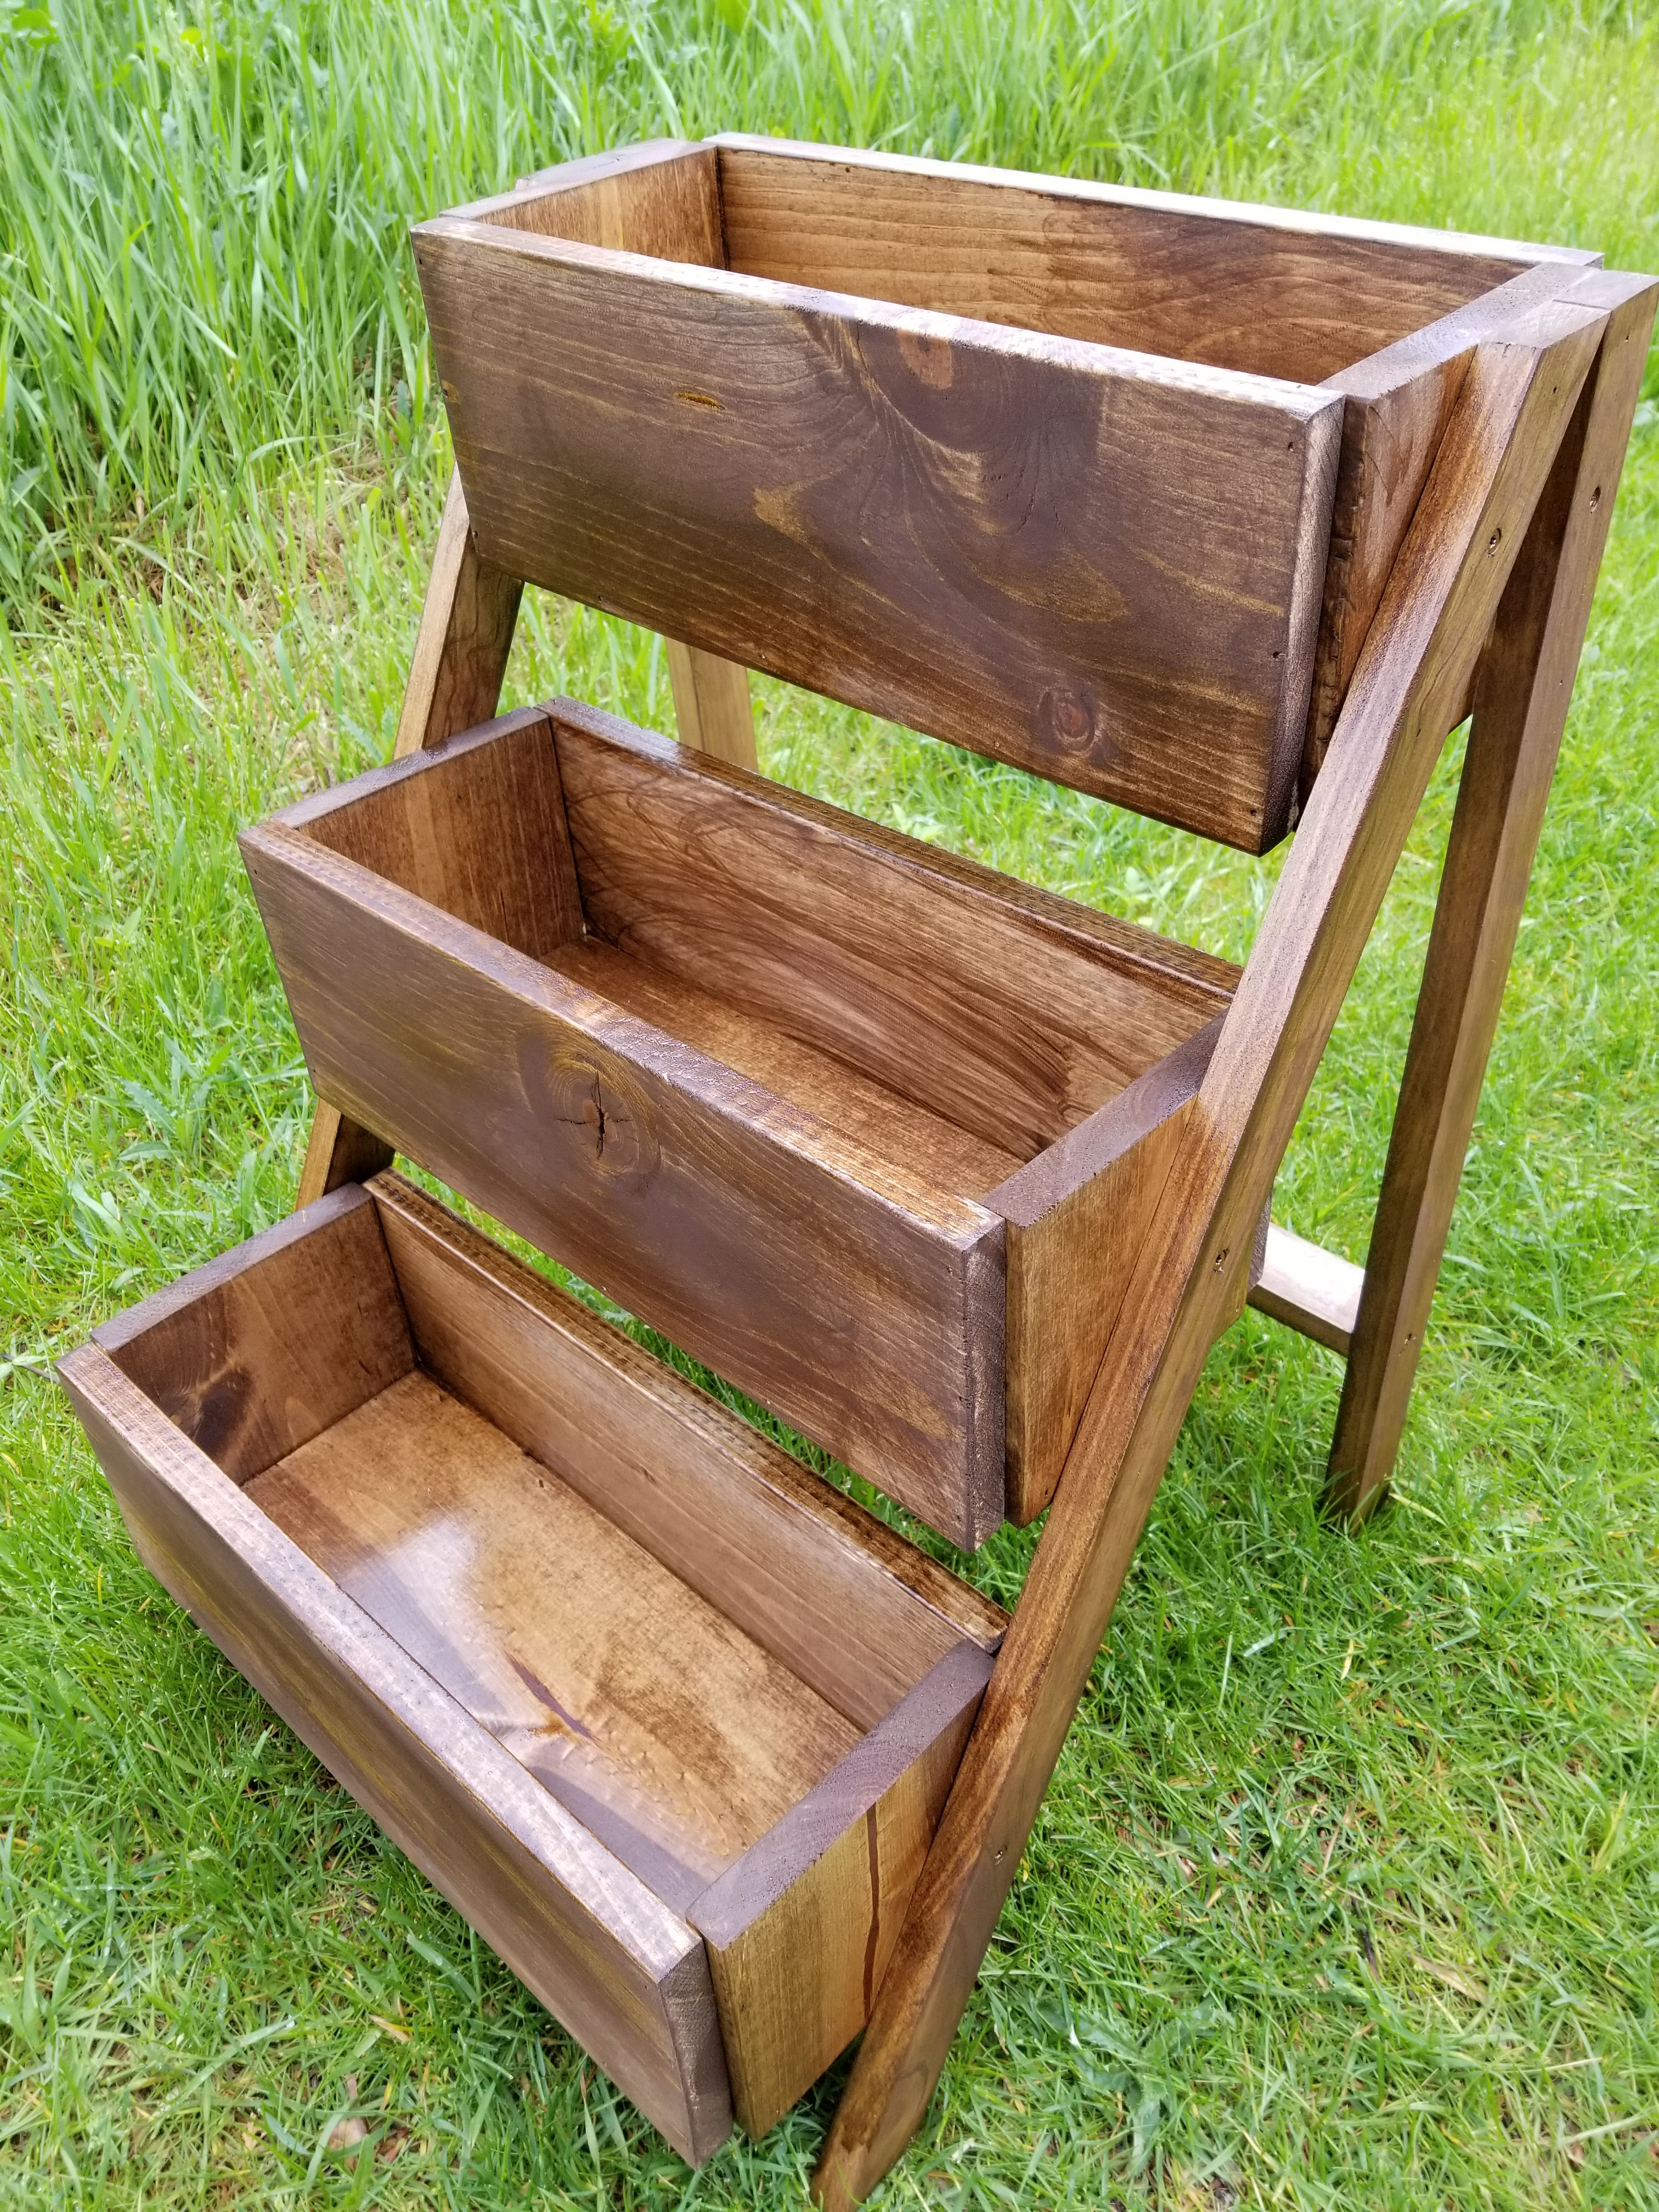 Ana White 3 Tier Planter Diy Projects With Images 400 x 300